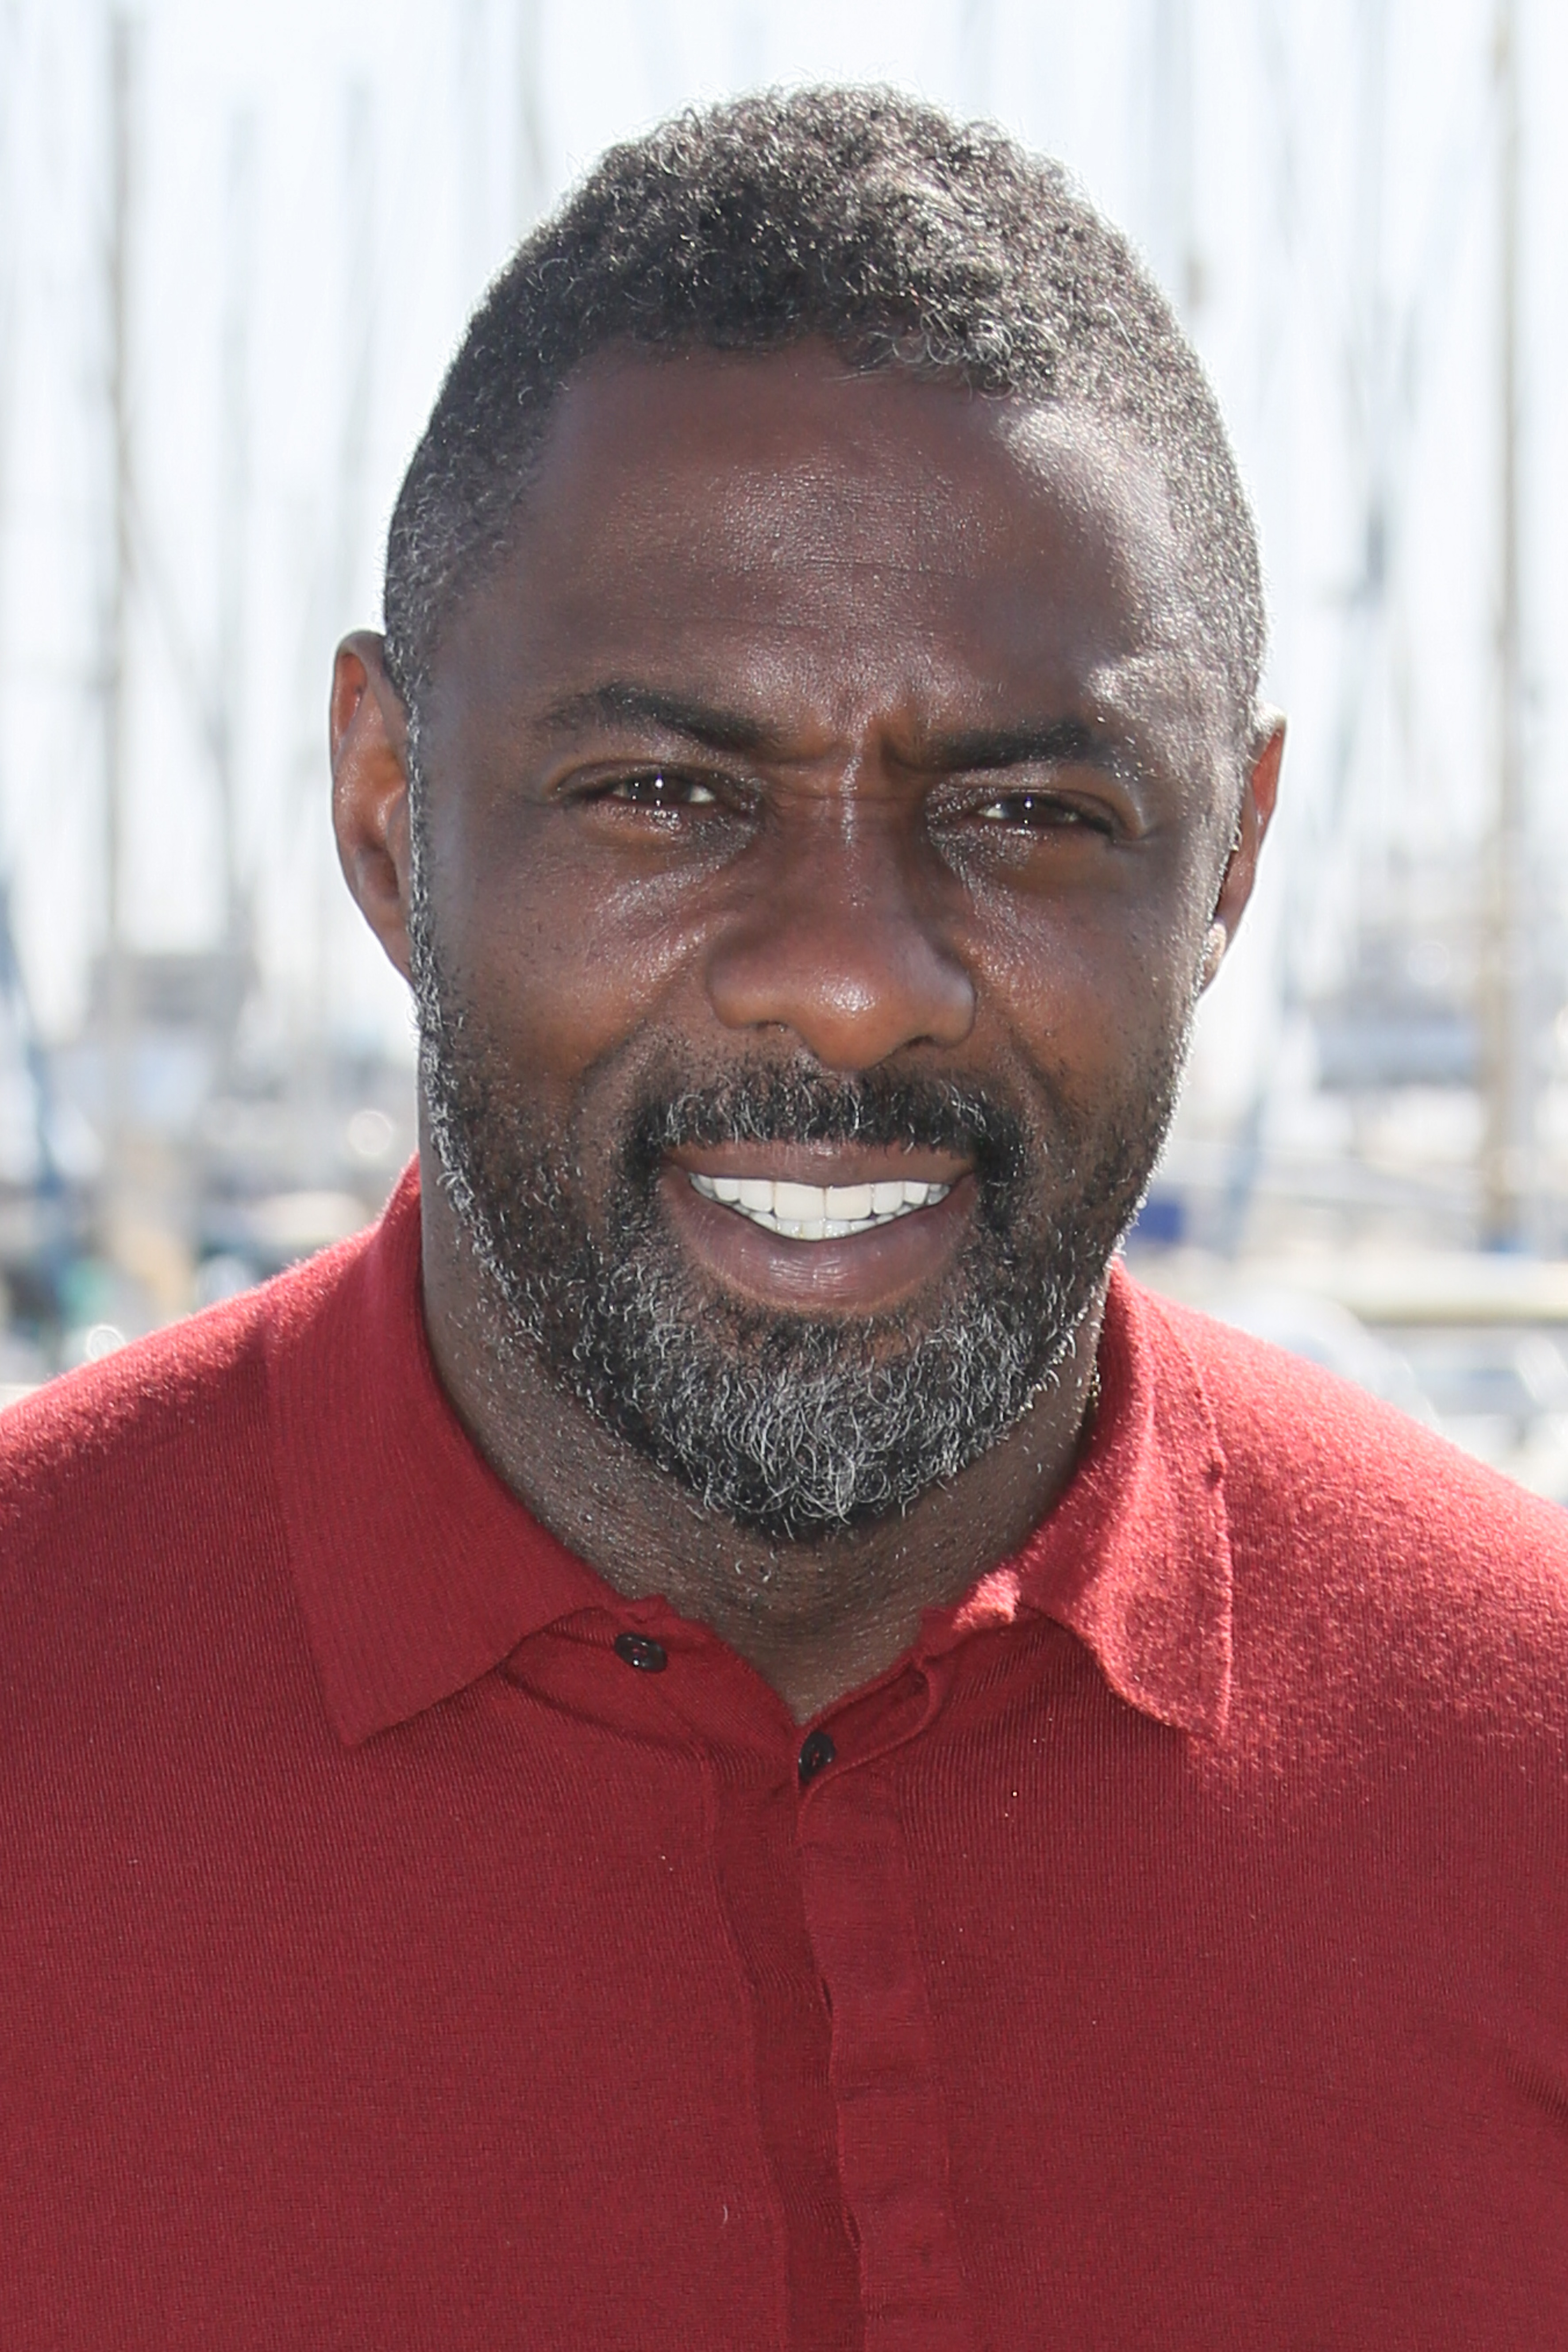 Idris Elba at  Mandela, My Dad And Me  photocall as part of MIPTV 2015 in Cannes, France on April 14, 2015.